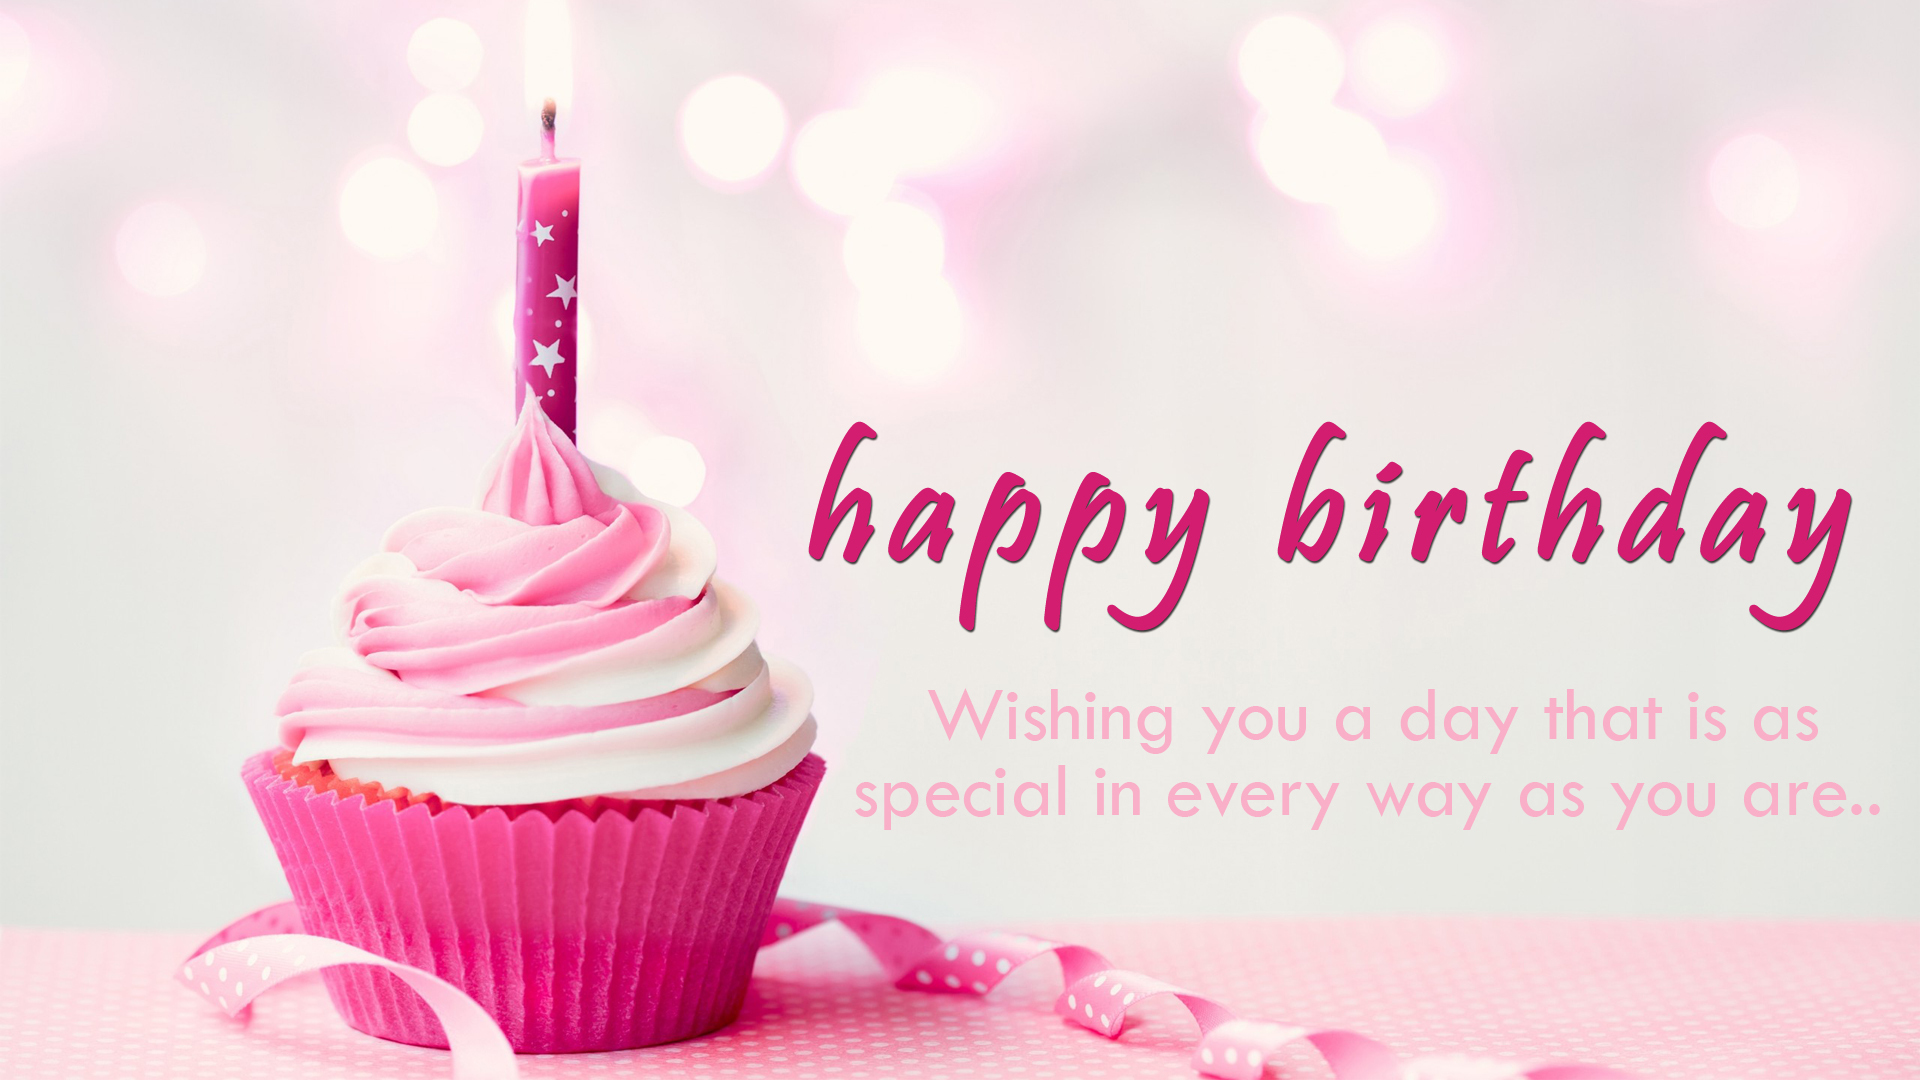 Happy Birthday Wishes Greeting HD Wallpapers Background